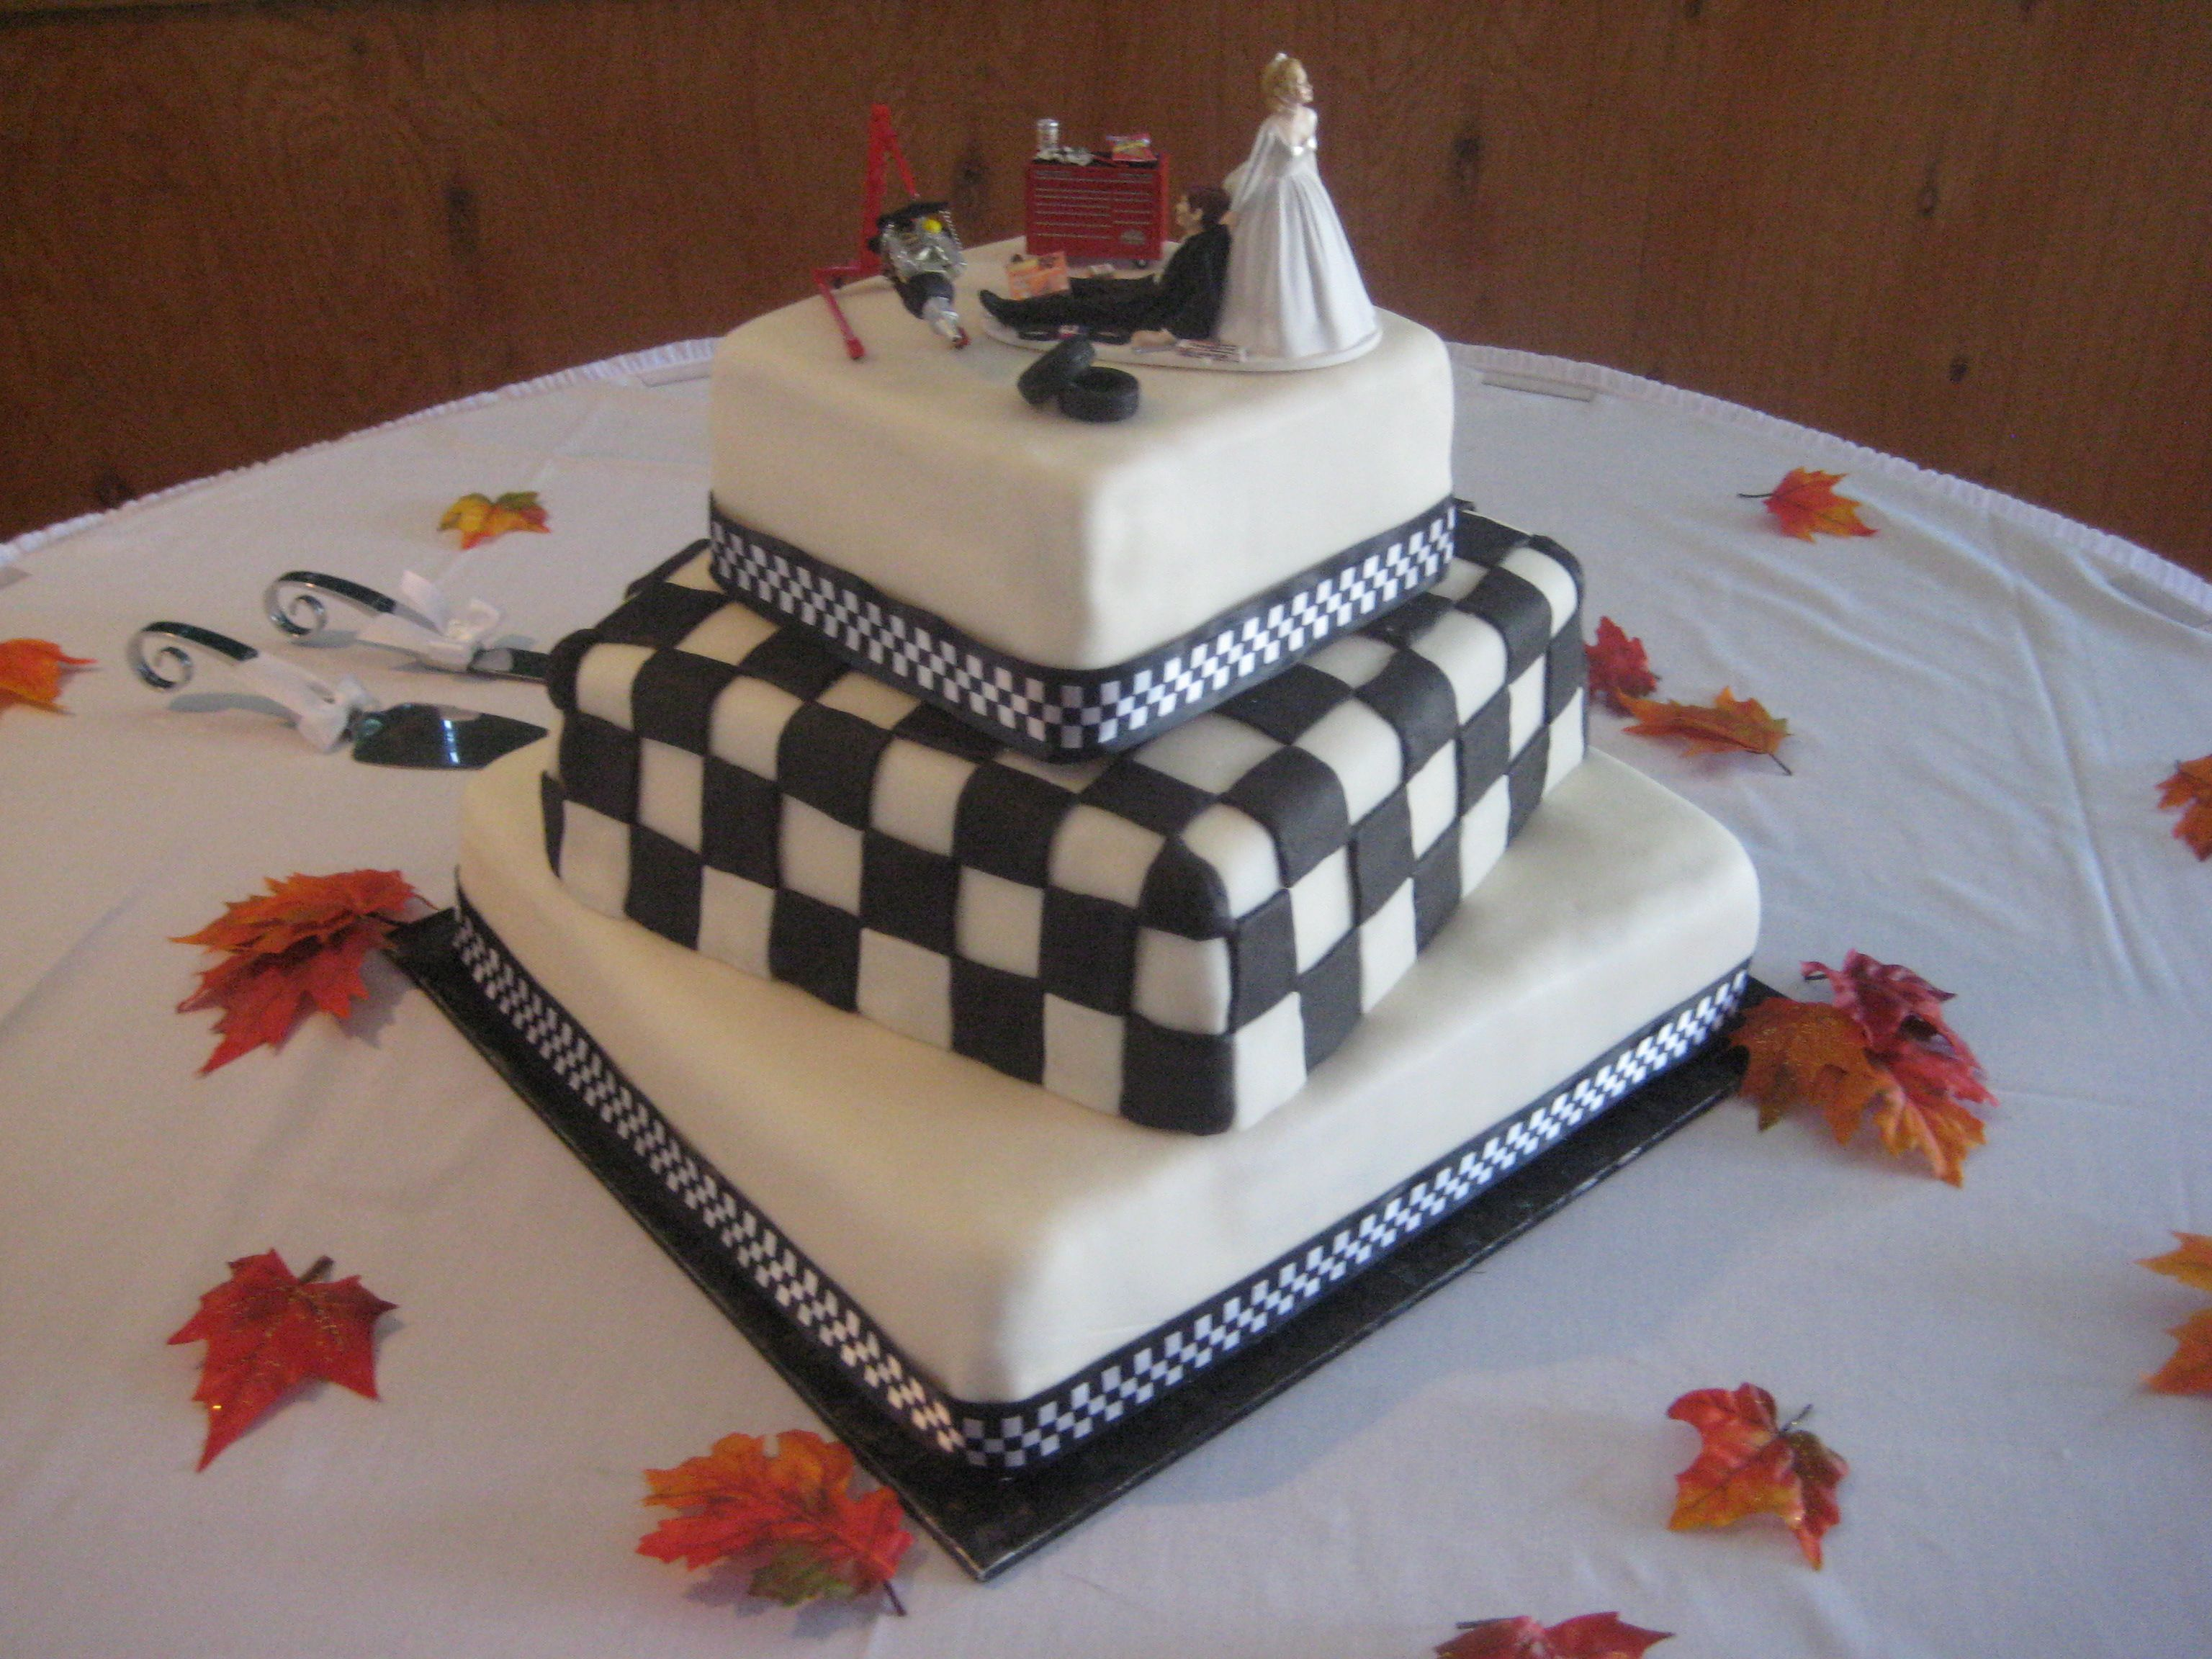 Race car theme wedding cake She wanted the checkered flag